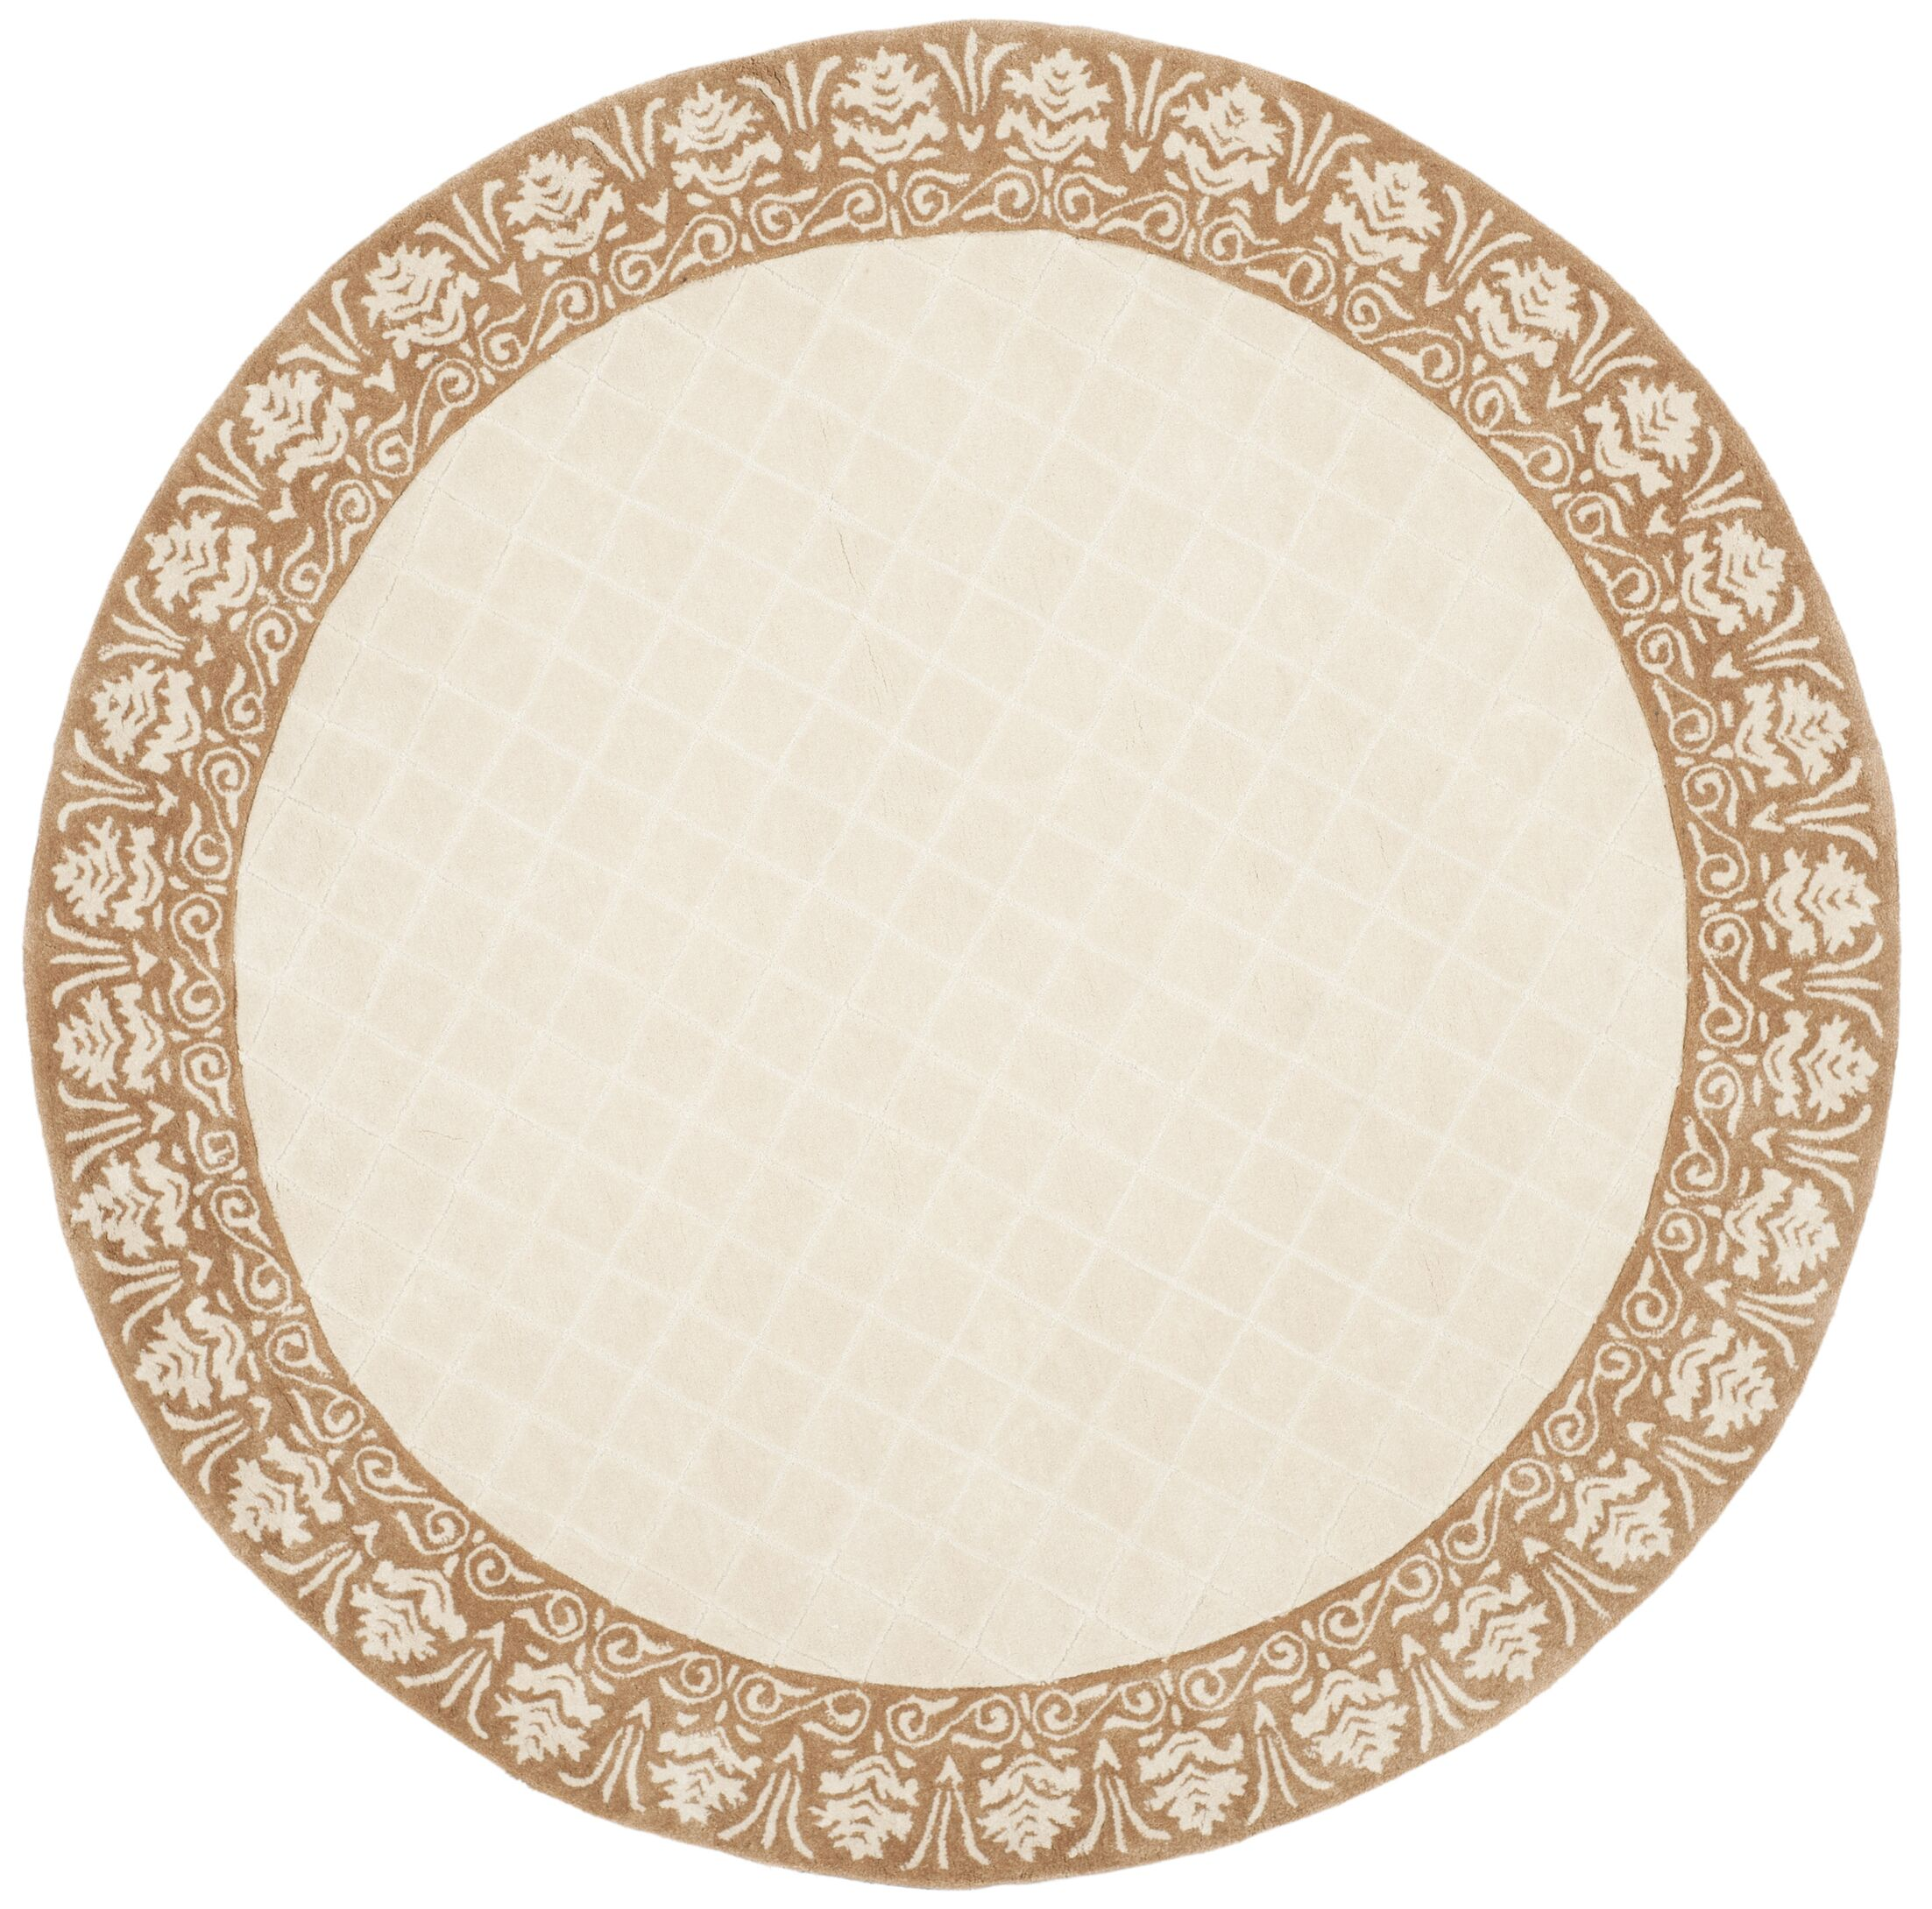 Caine Hand Tufted Ivory Area Rug Rug Size: Round 6'